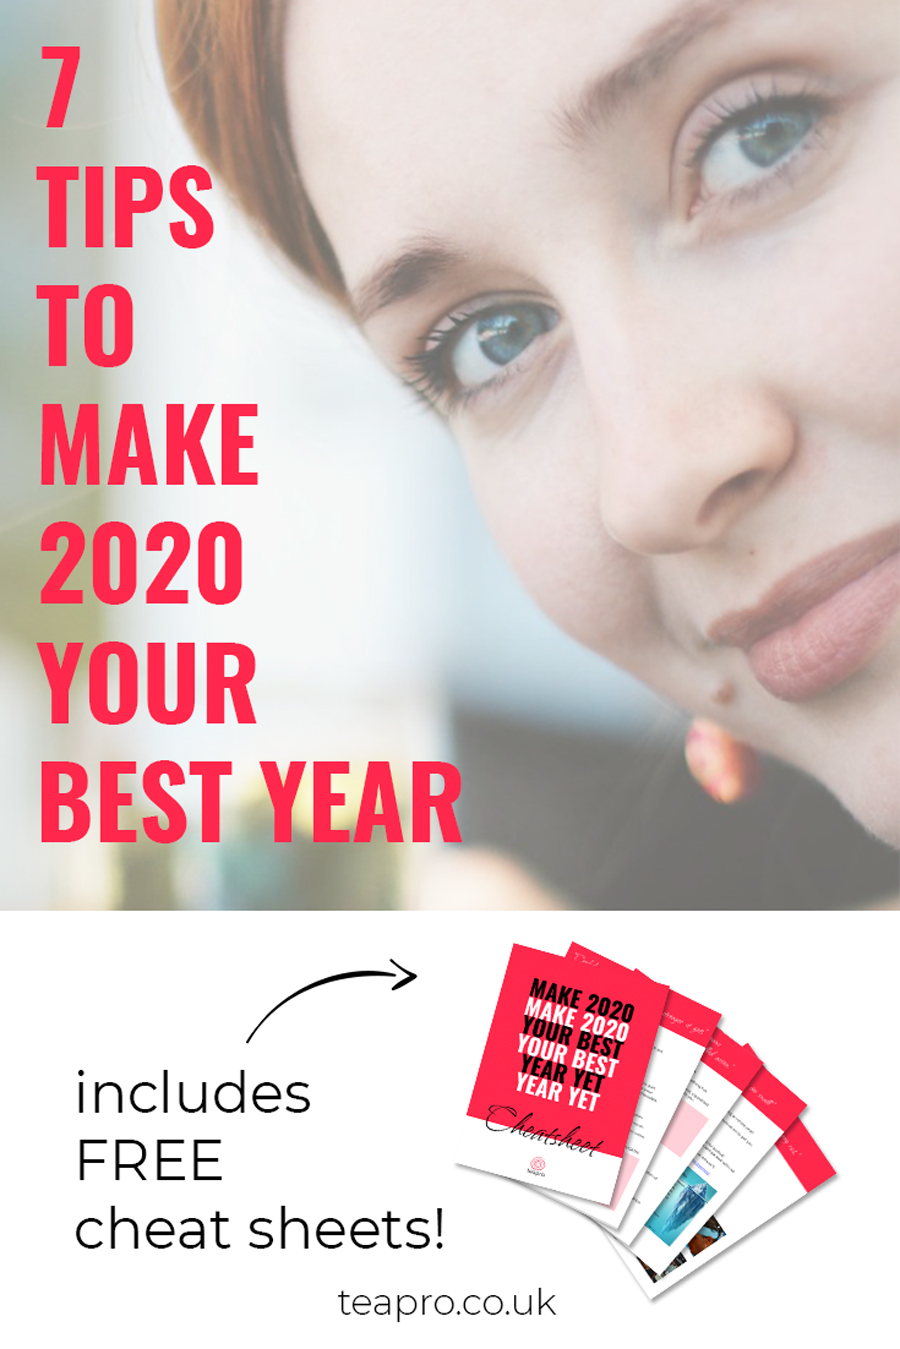 7-tips-to-make-2020-your-best-year-yet